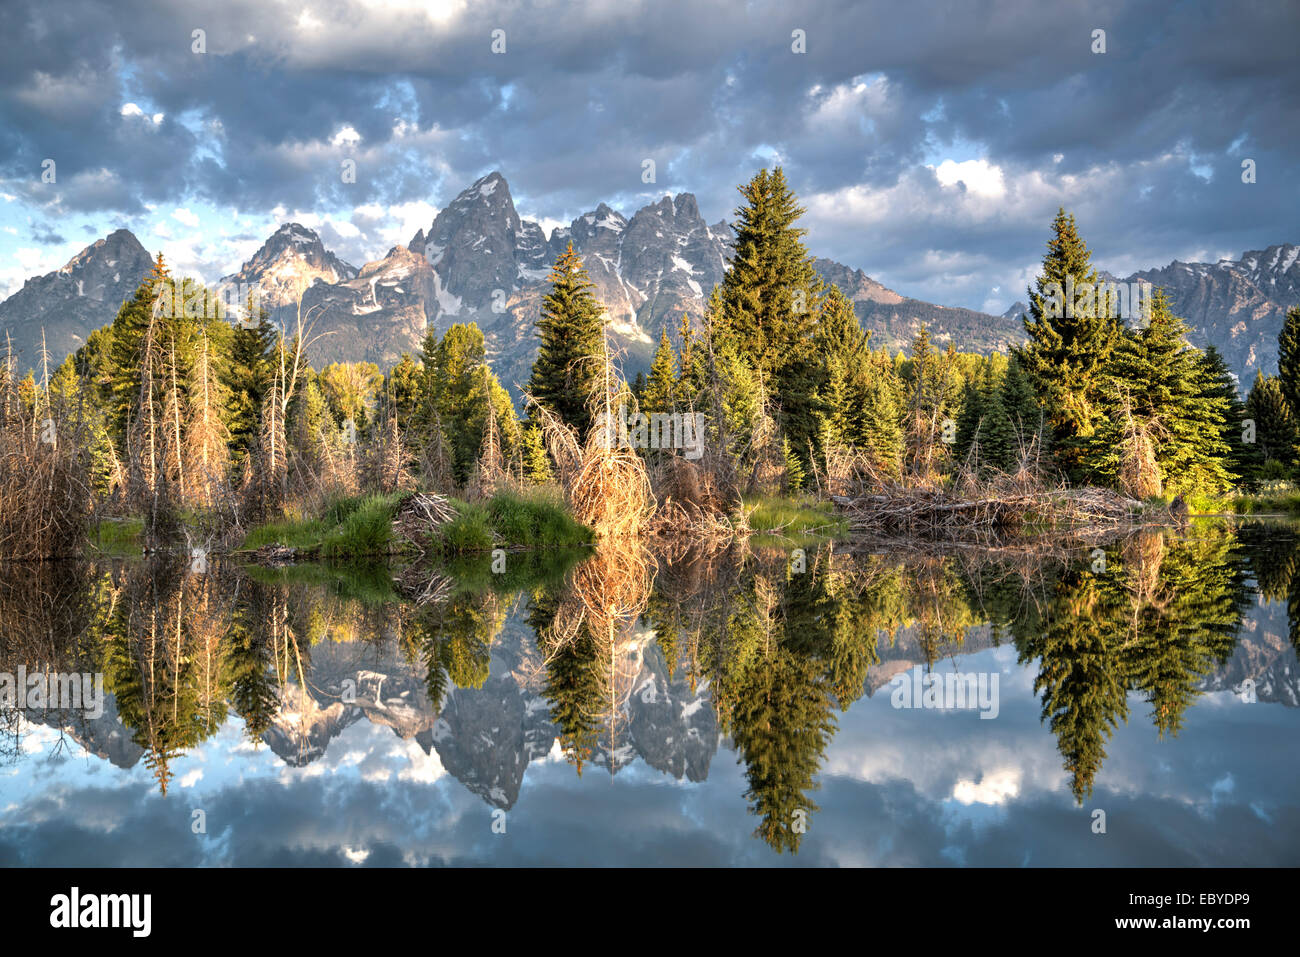 USA, Wyoming, Grand Teton National Park, water reflection of the Teton Range, taken from the end Schwabacher Road - Stock Image